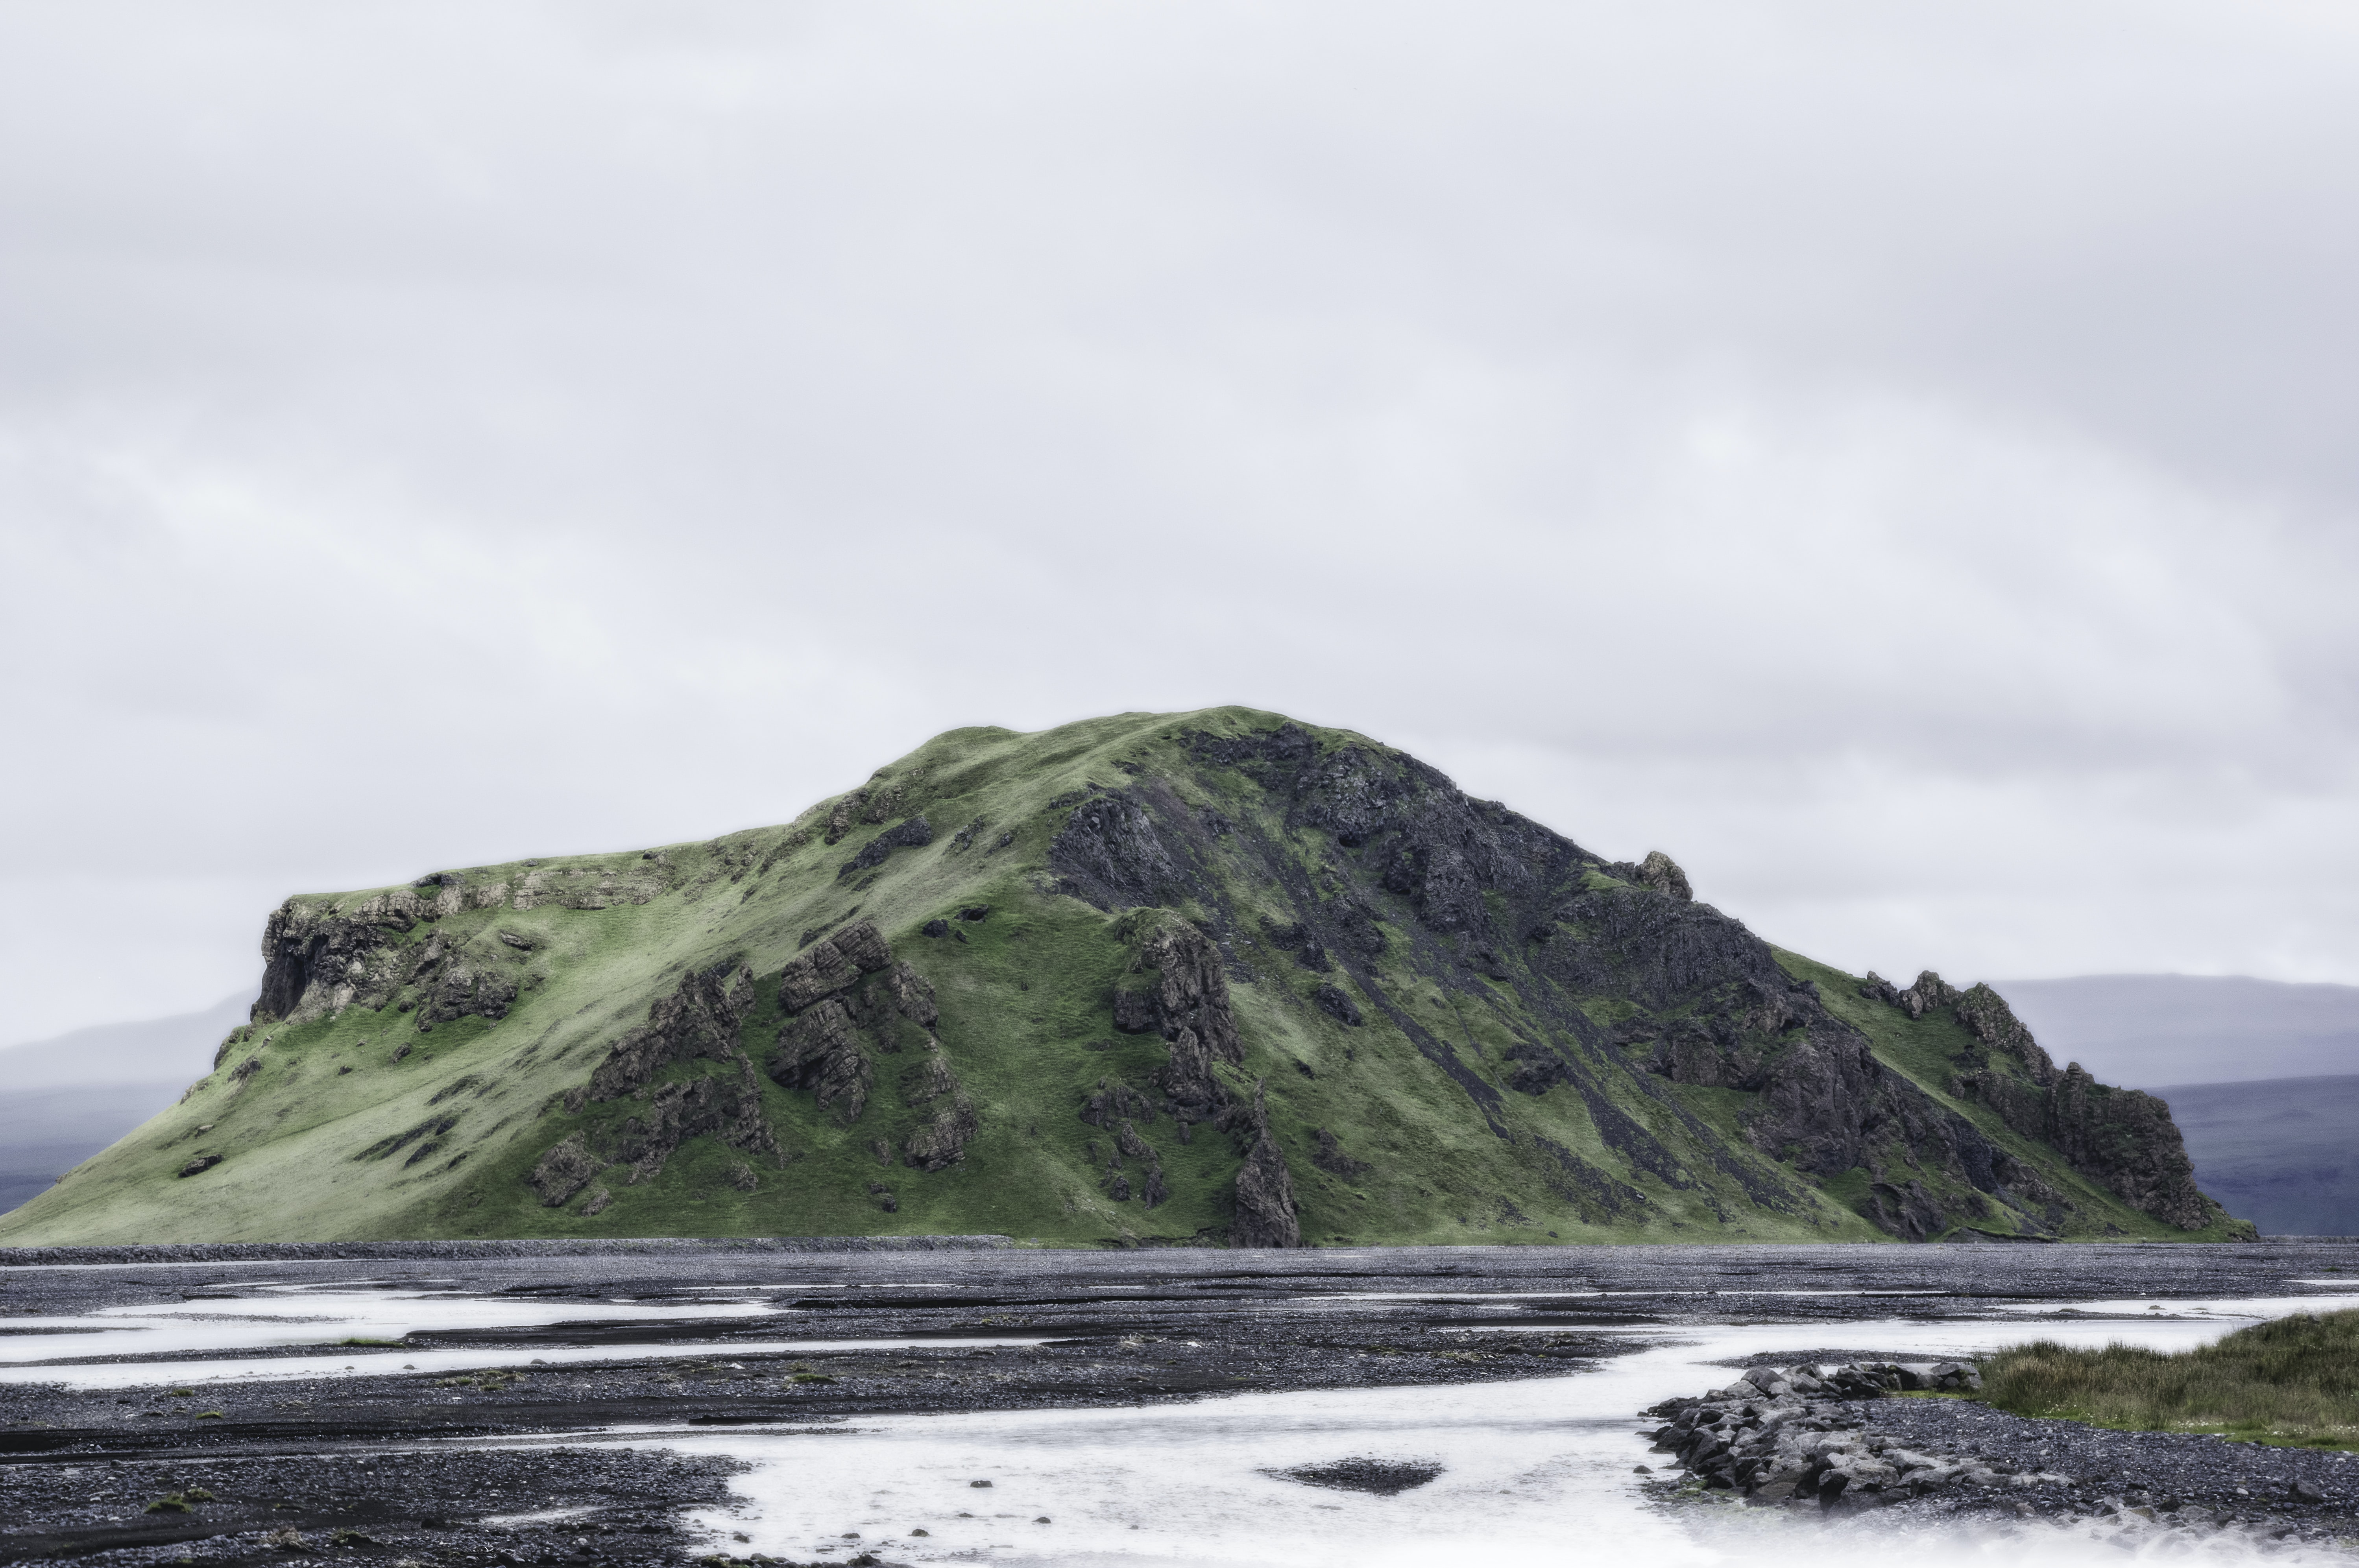 A rugged green hillock in the middle of an icy field in Iceland